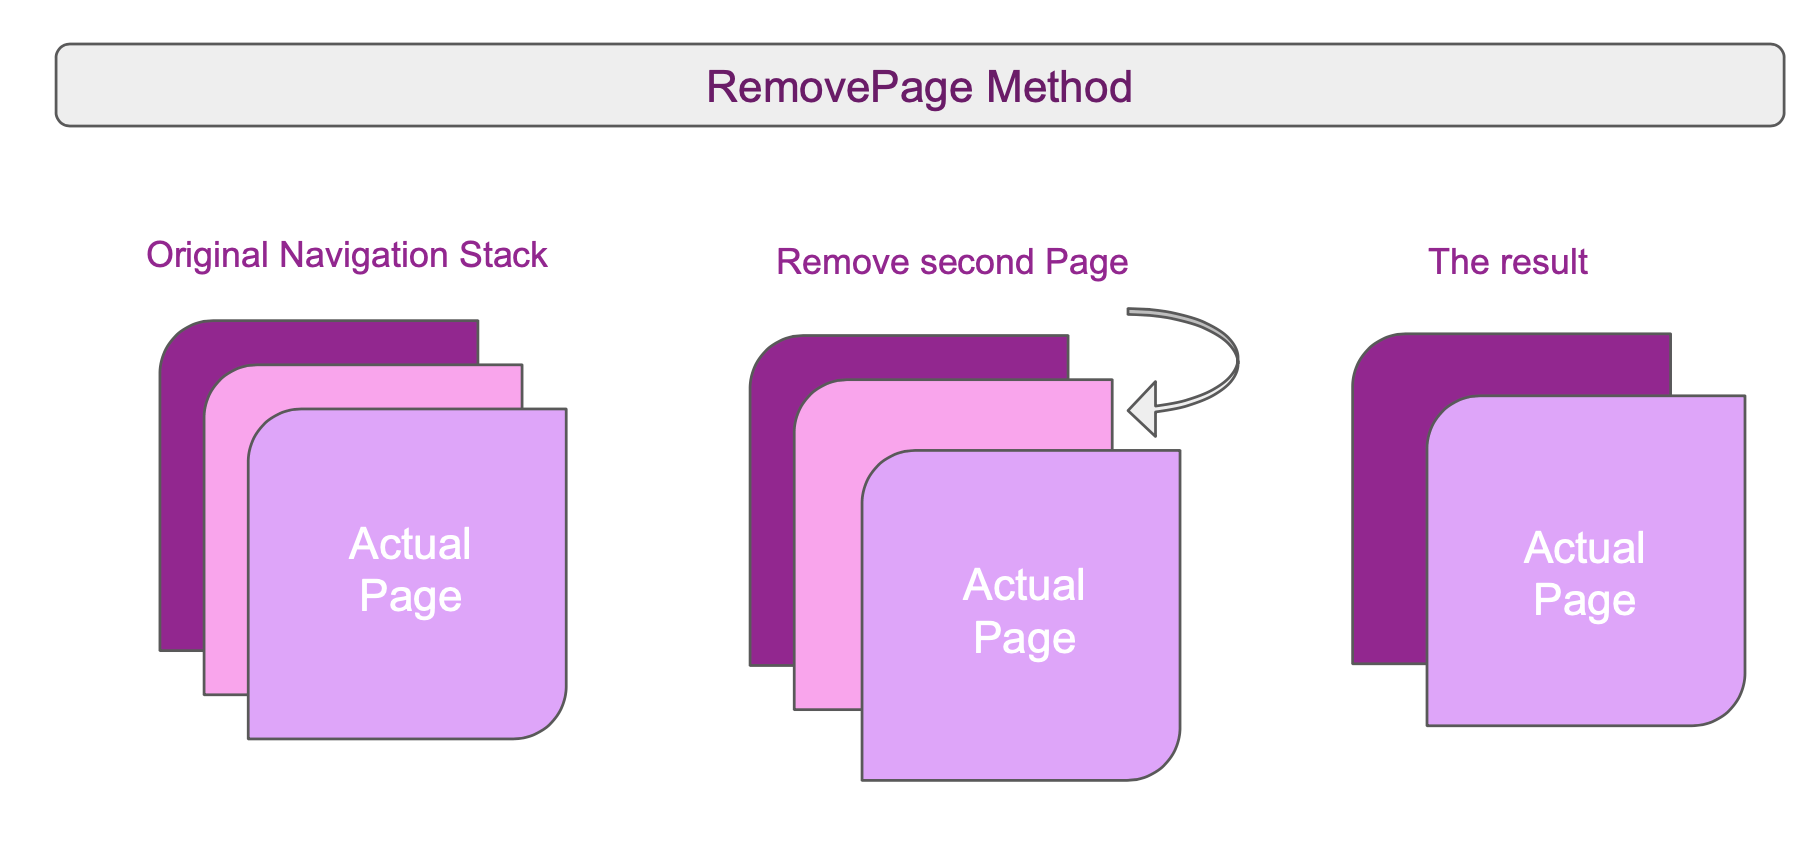 """Original navigation stack"" shows three pages, with Actual Page on top. An arrow says ""Remove second page"", and ""The Result"" shows a stack of two pages with Actual Page still on top but the page behind it is gone."